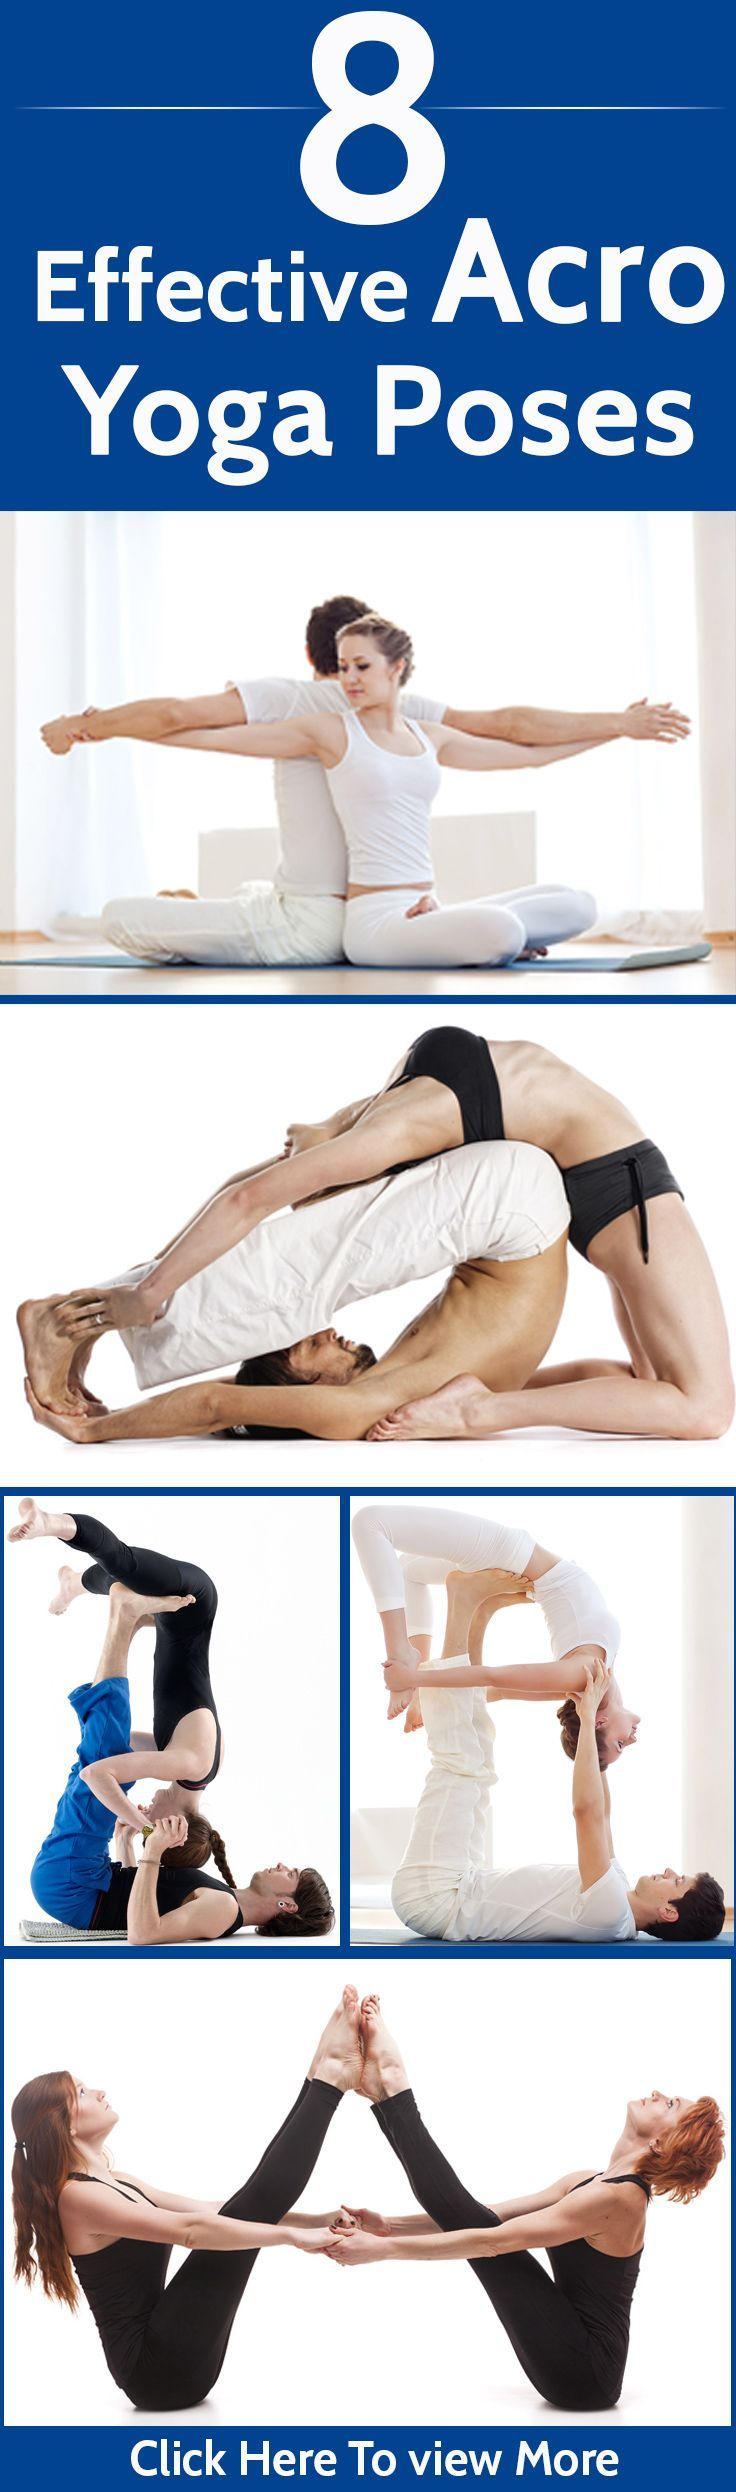 8 Effective Acro Yoga Poses For A Healthy Body- I wish I had someone who would do yoga with me